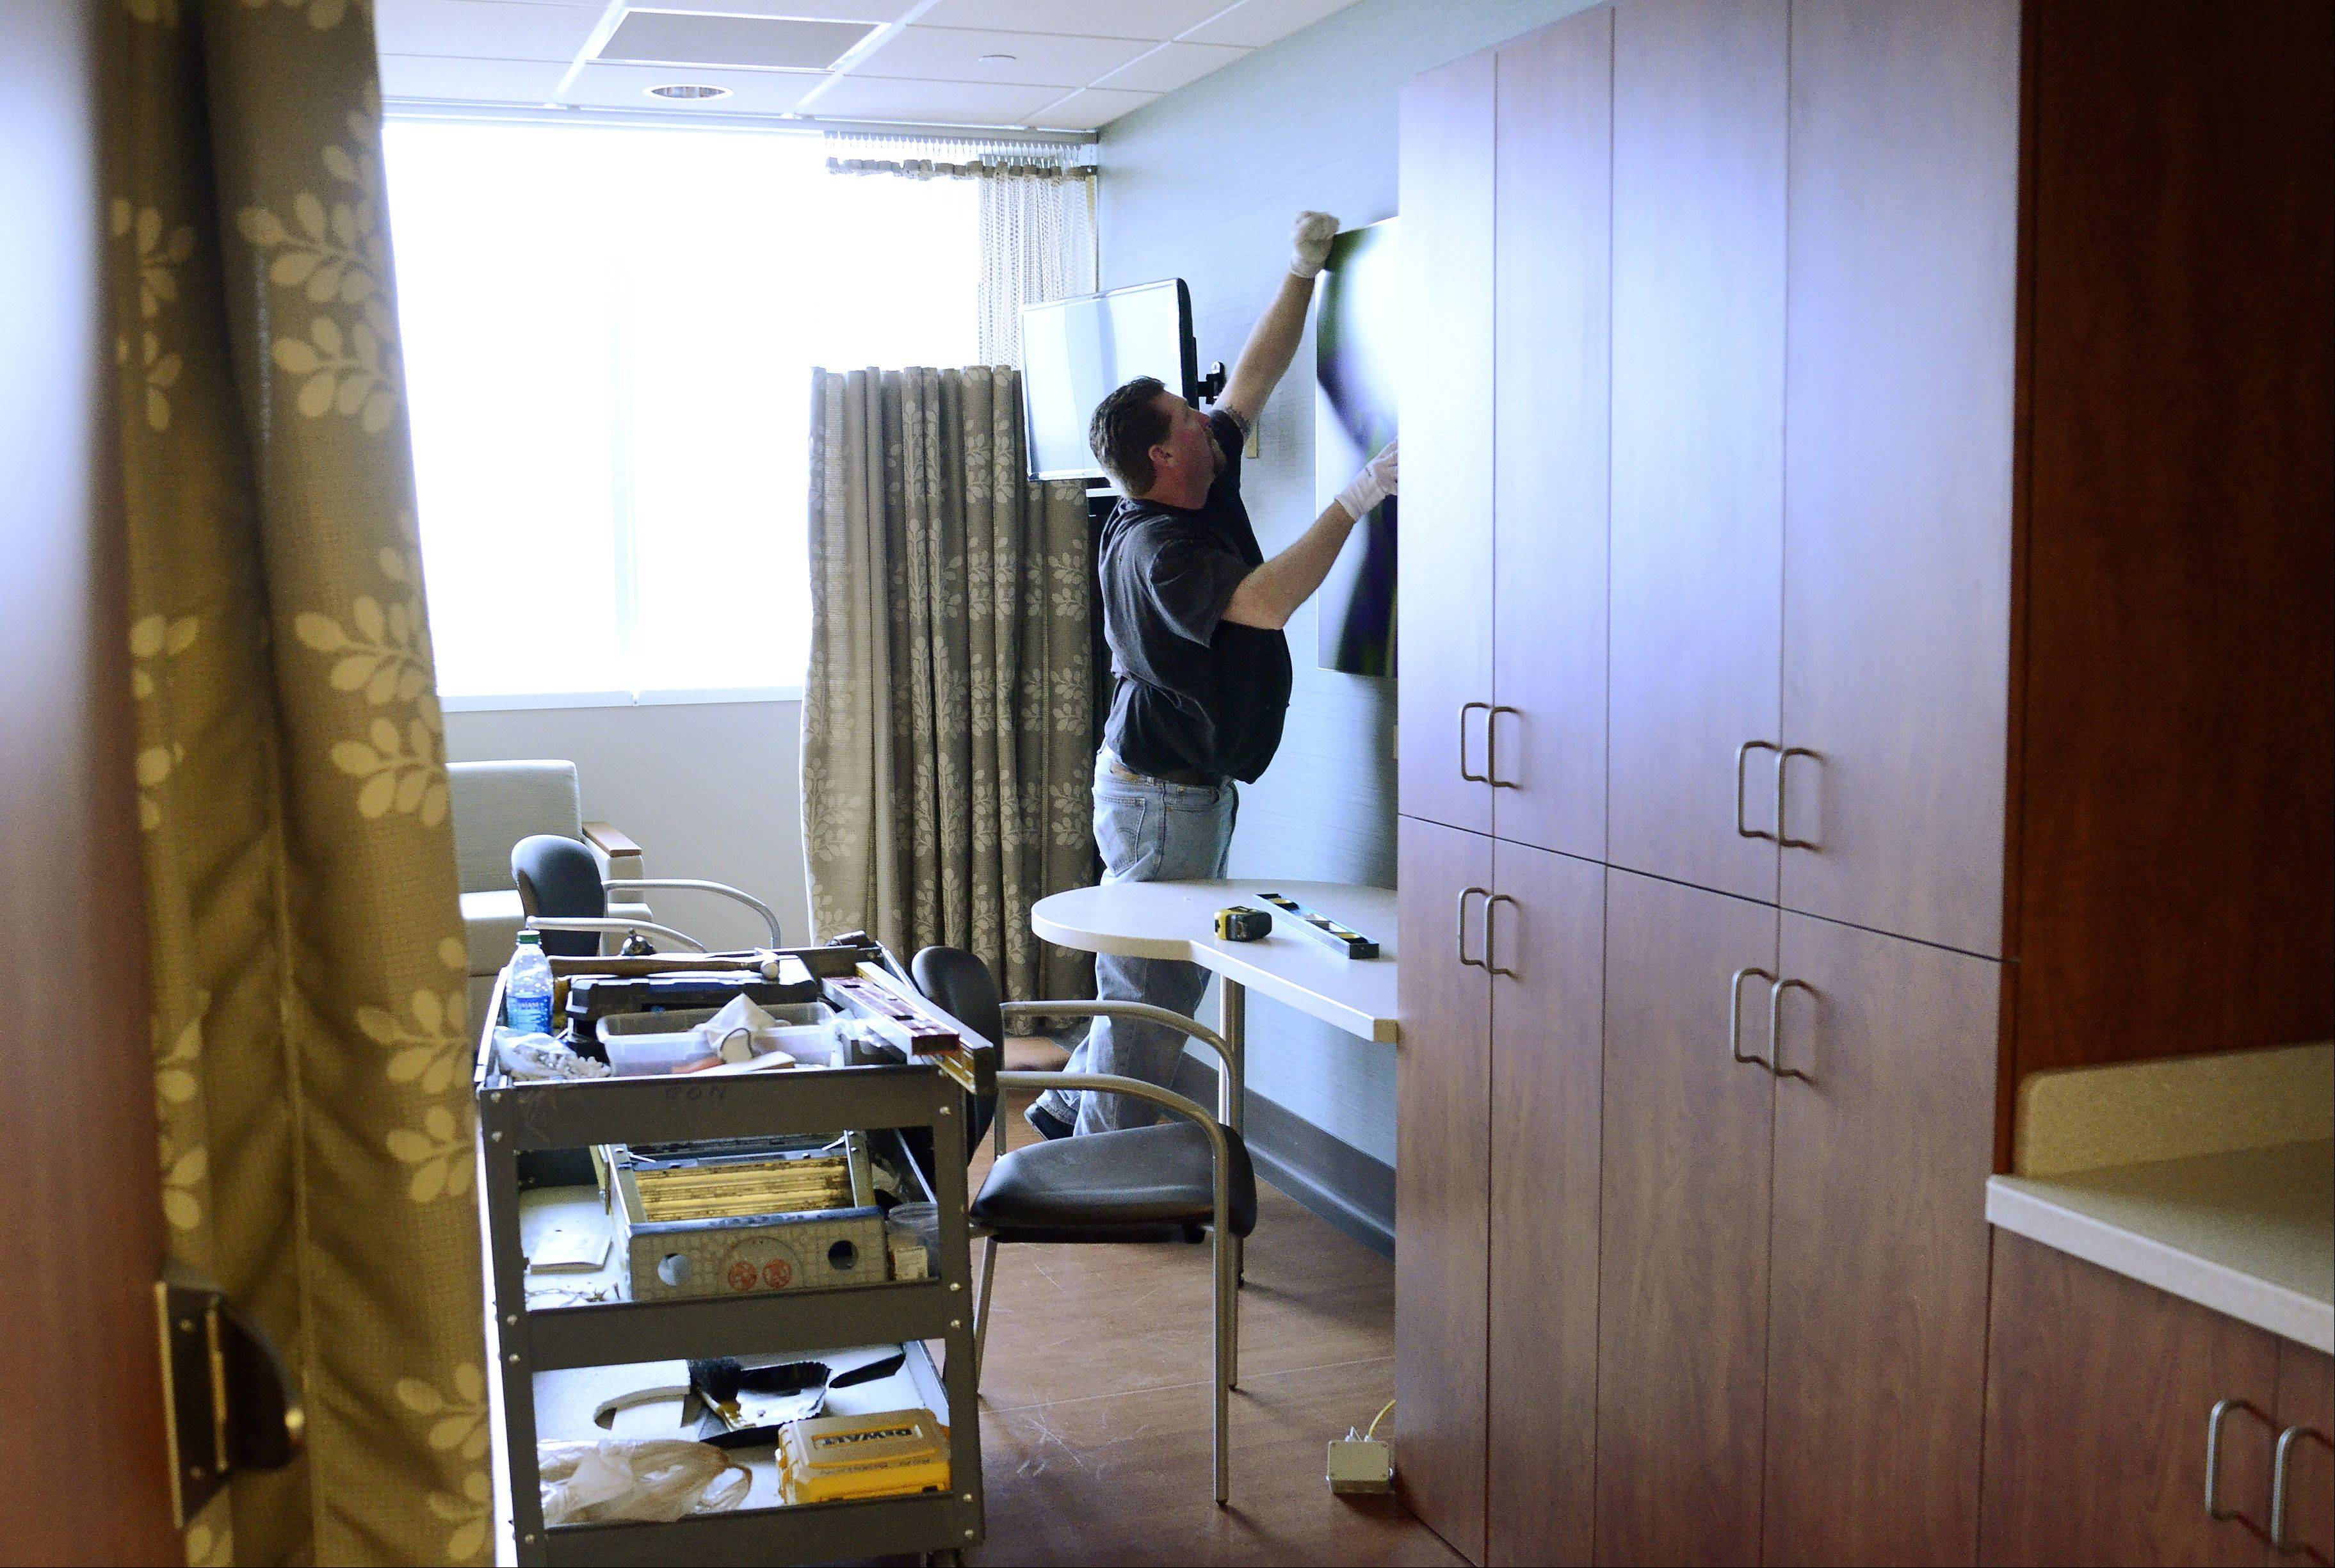 Ron Burklow hangs artwork in a patient's room.